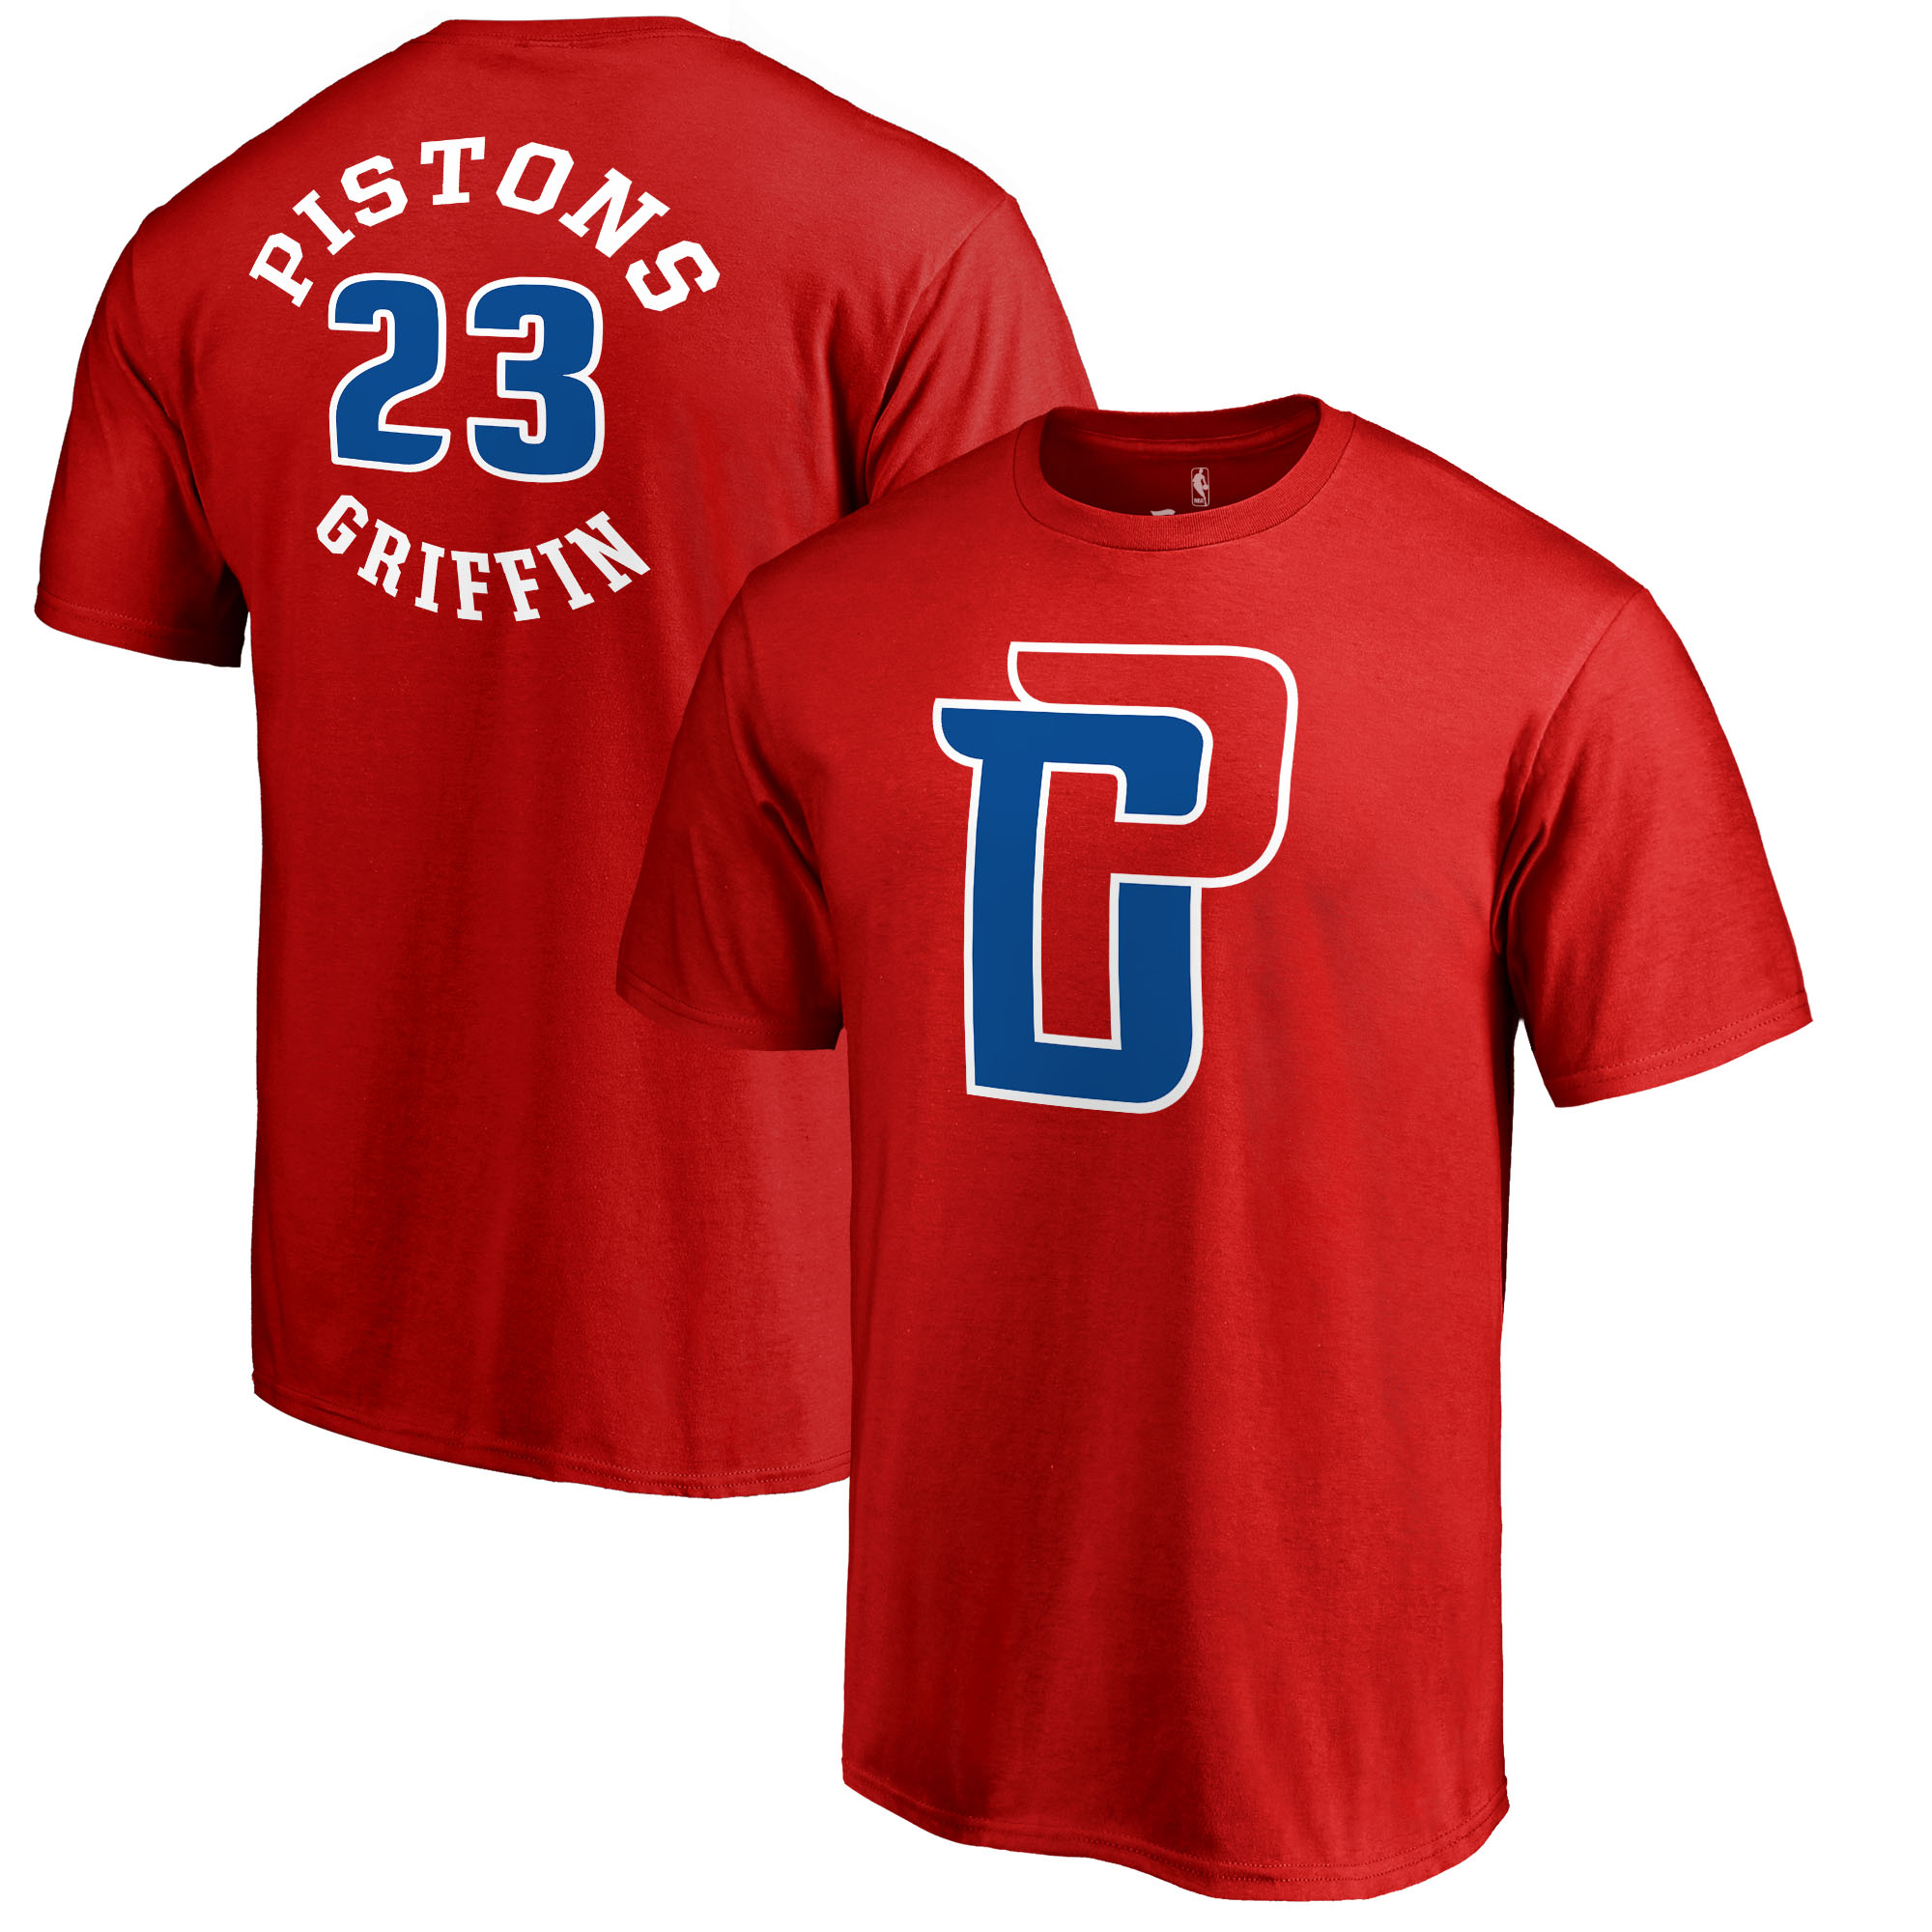 Blake Griffin Detroit Pistons Fanatics Branded Round About Name & Number T-Shirt - Red